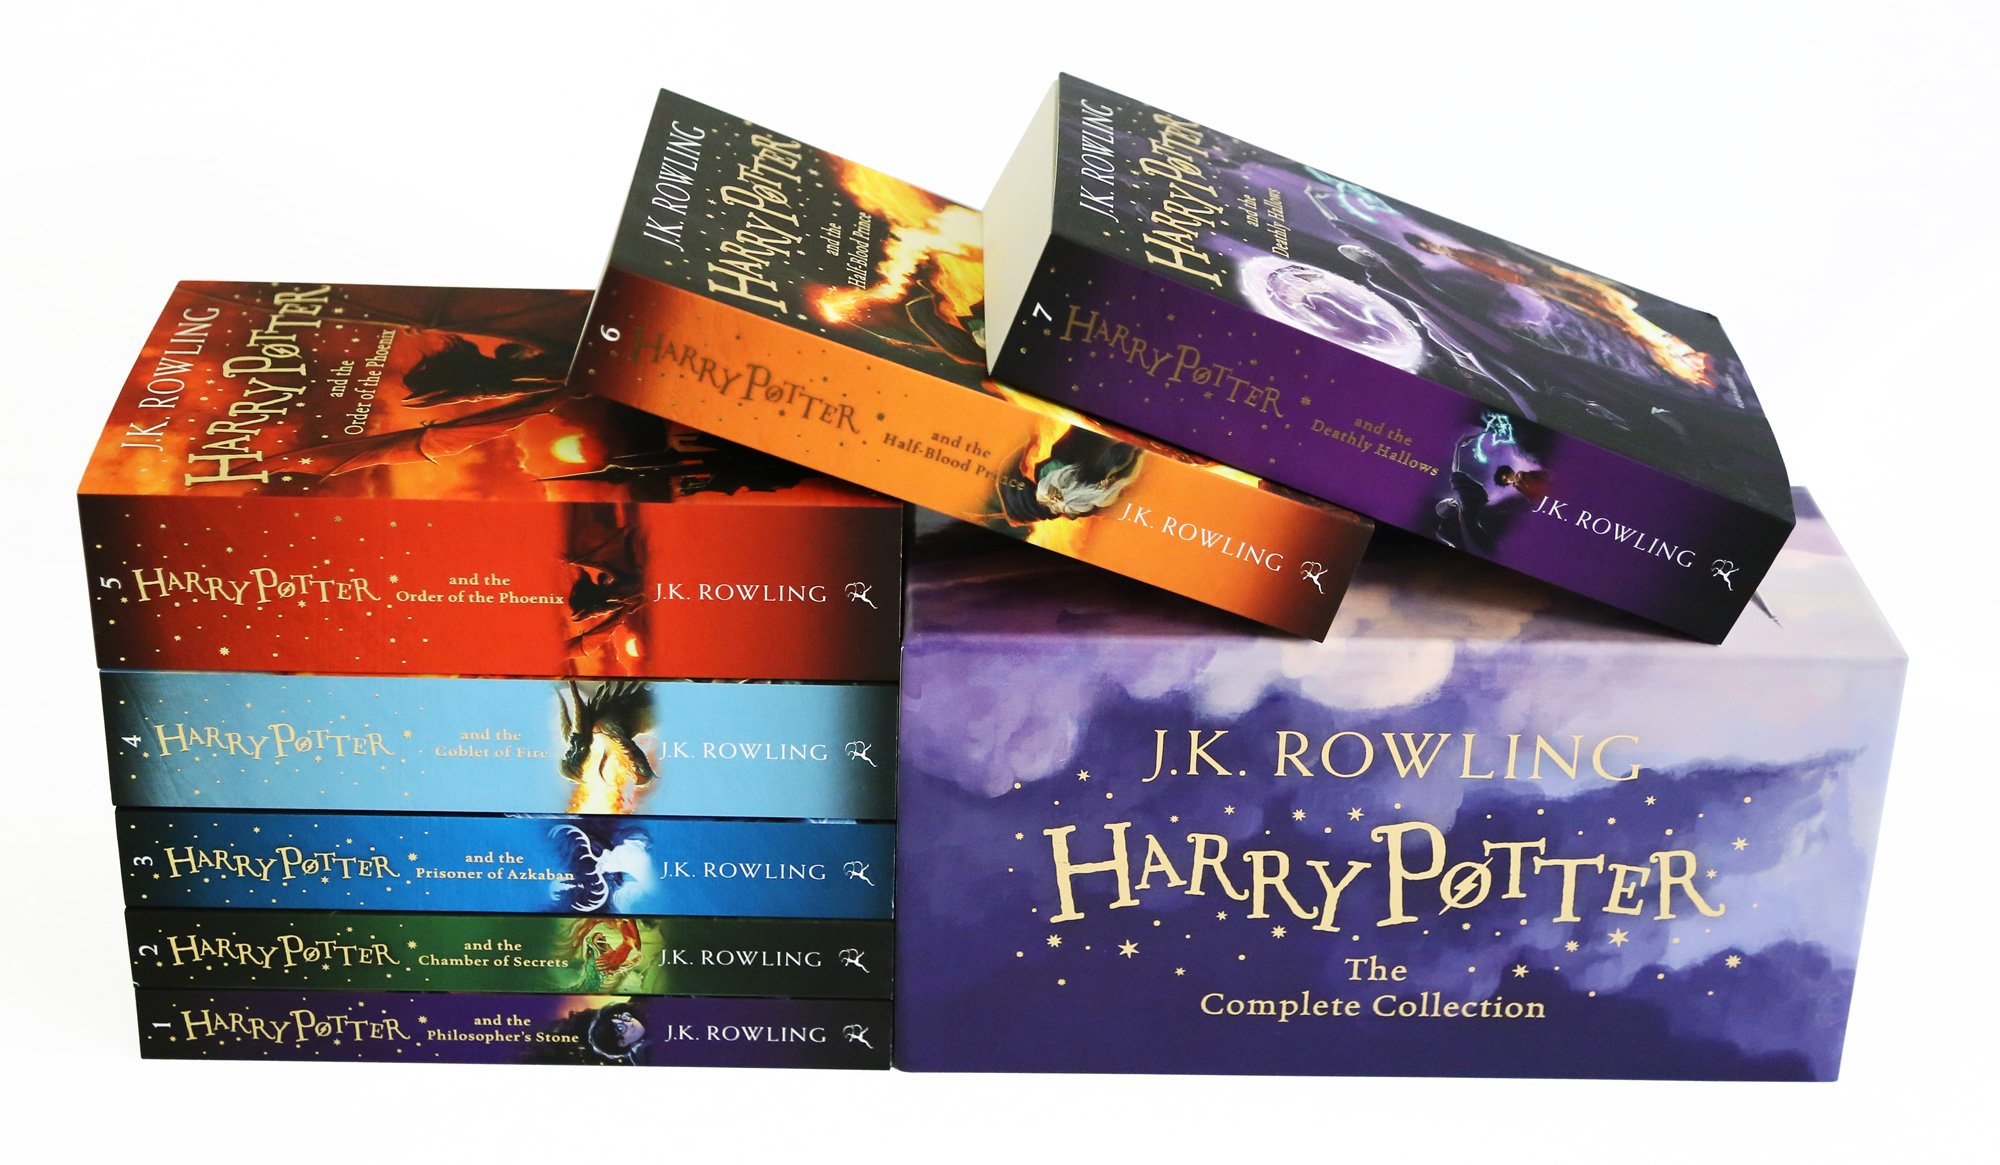 Amazoncom: harry potter adult gifts